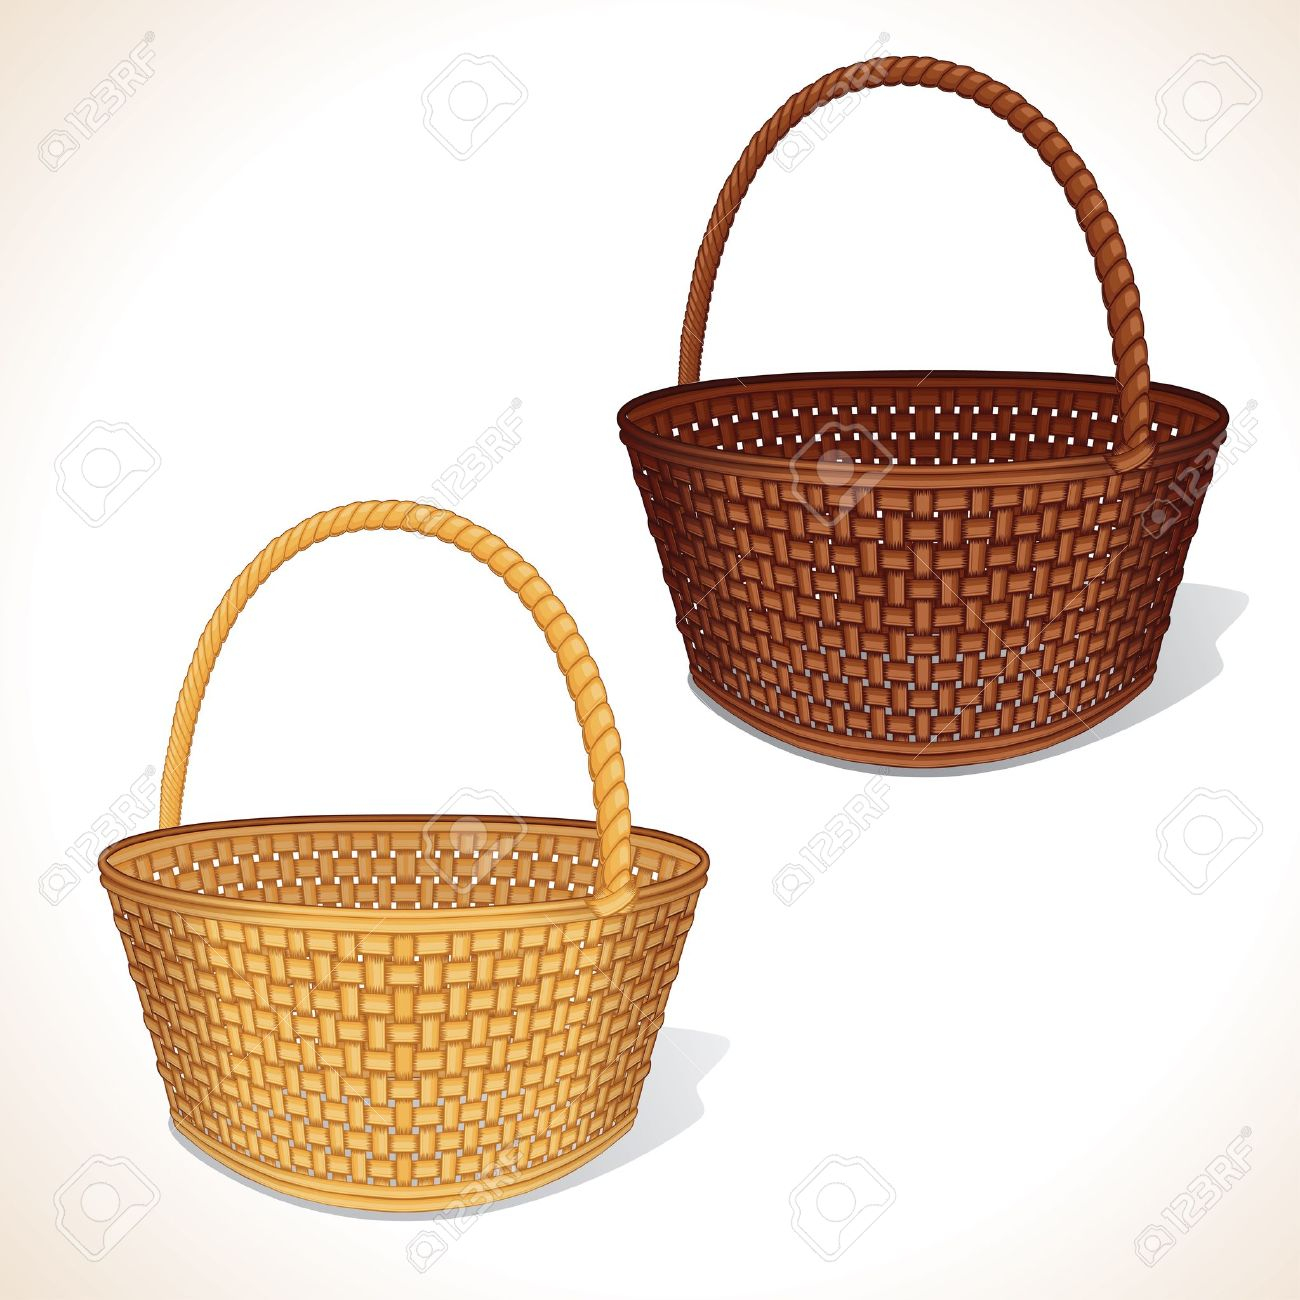 Isolated Vector Basket Stock Vector - 13572960